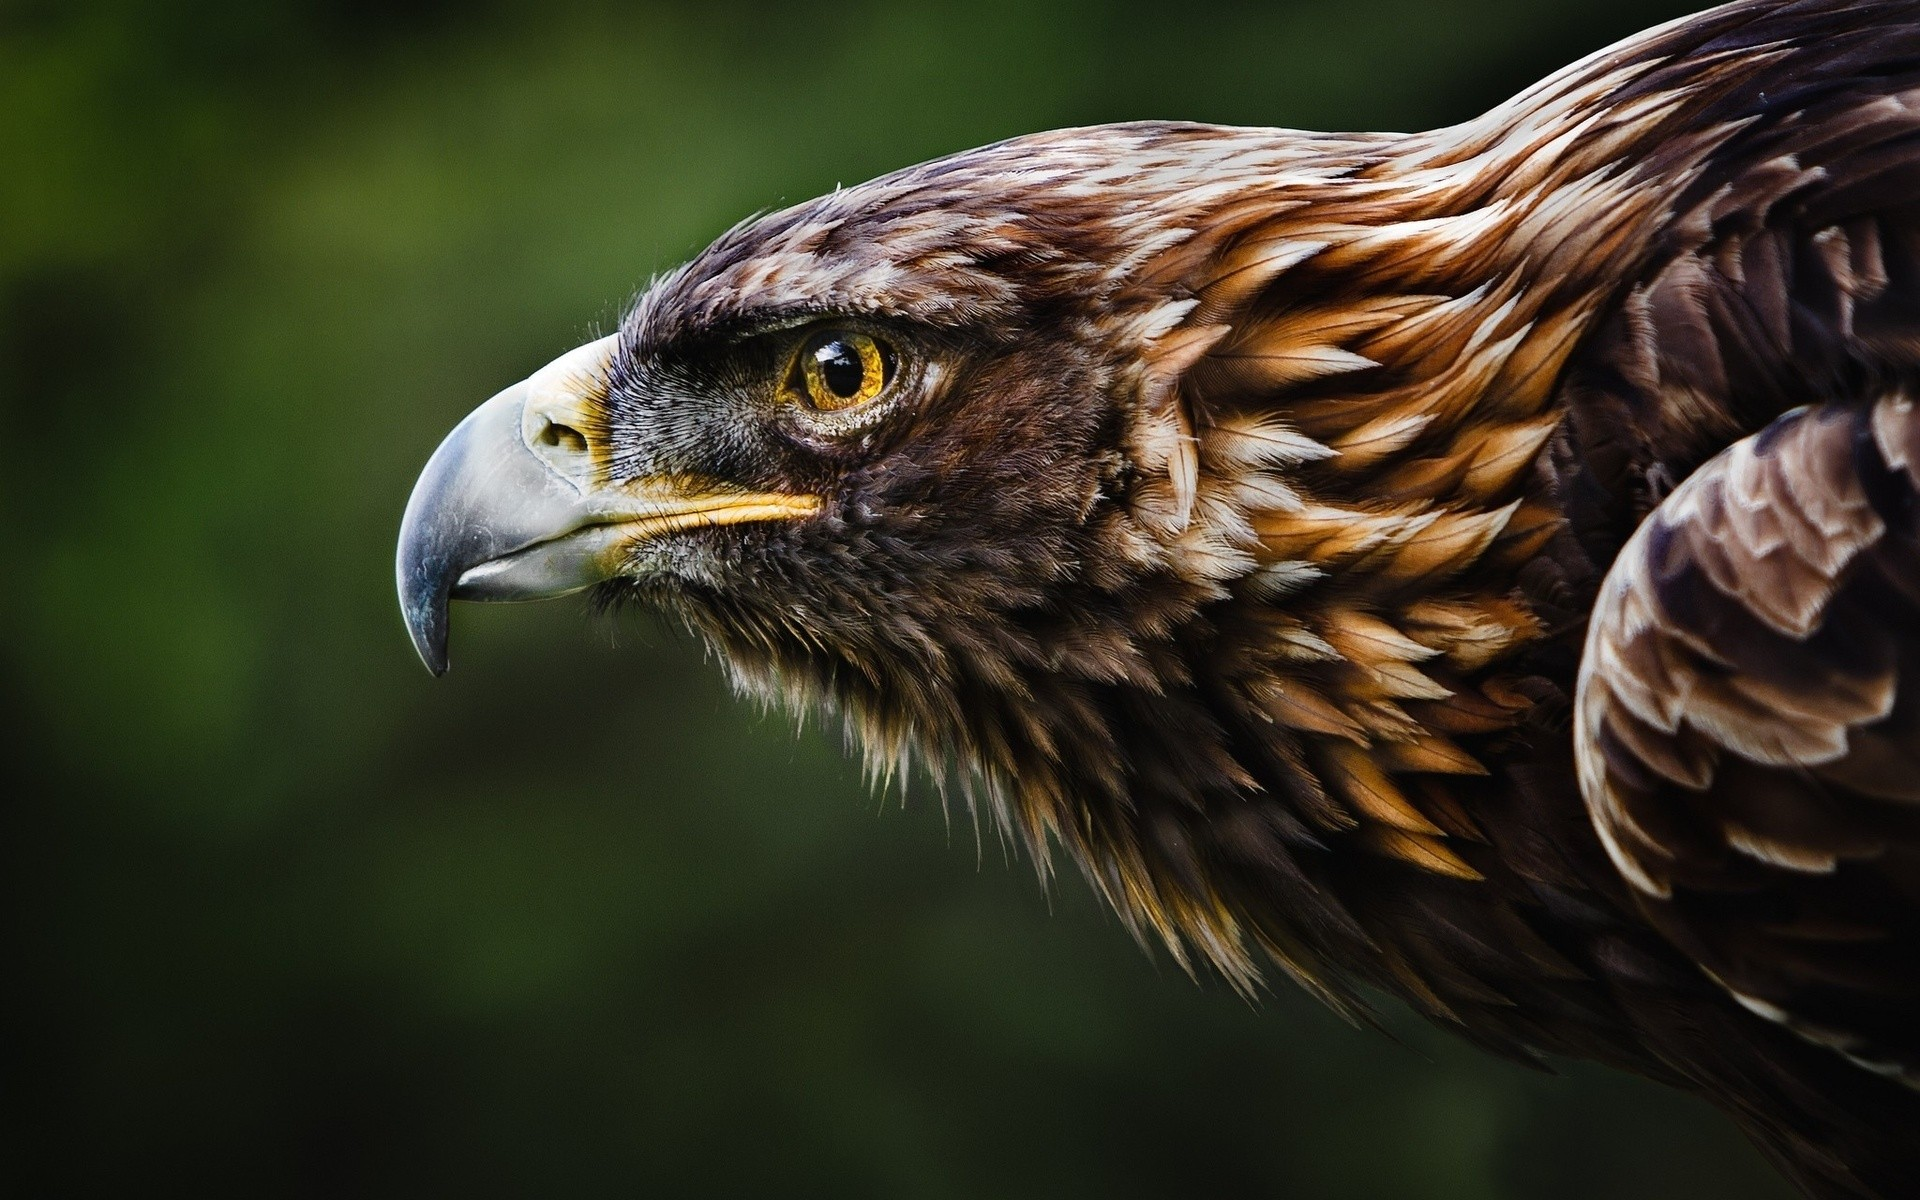 gold-eagle-william-hornaday-hd-wallpaper jpgGolden Eagle Hunting Wallpaper